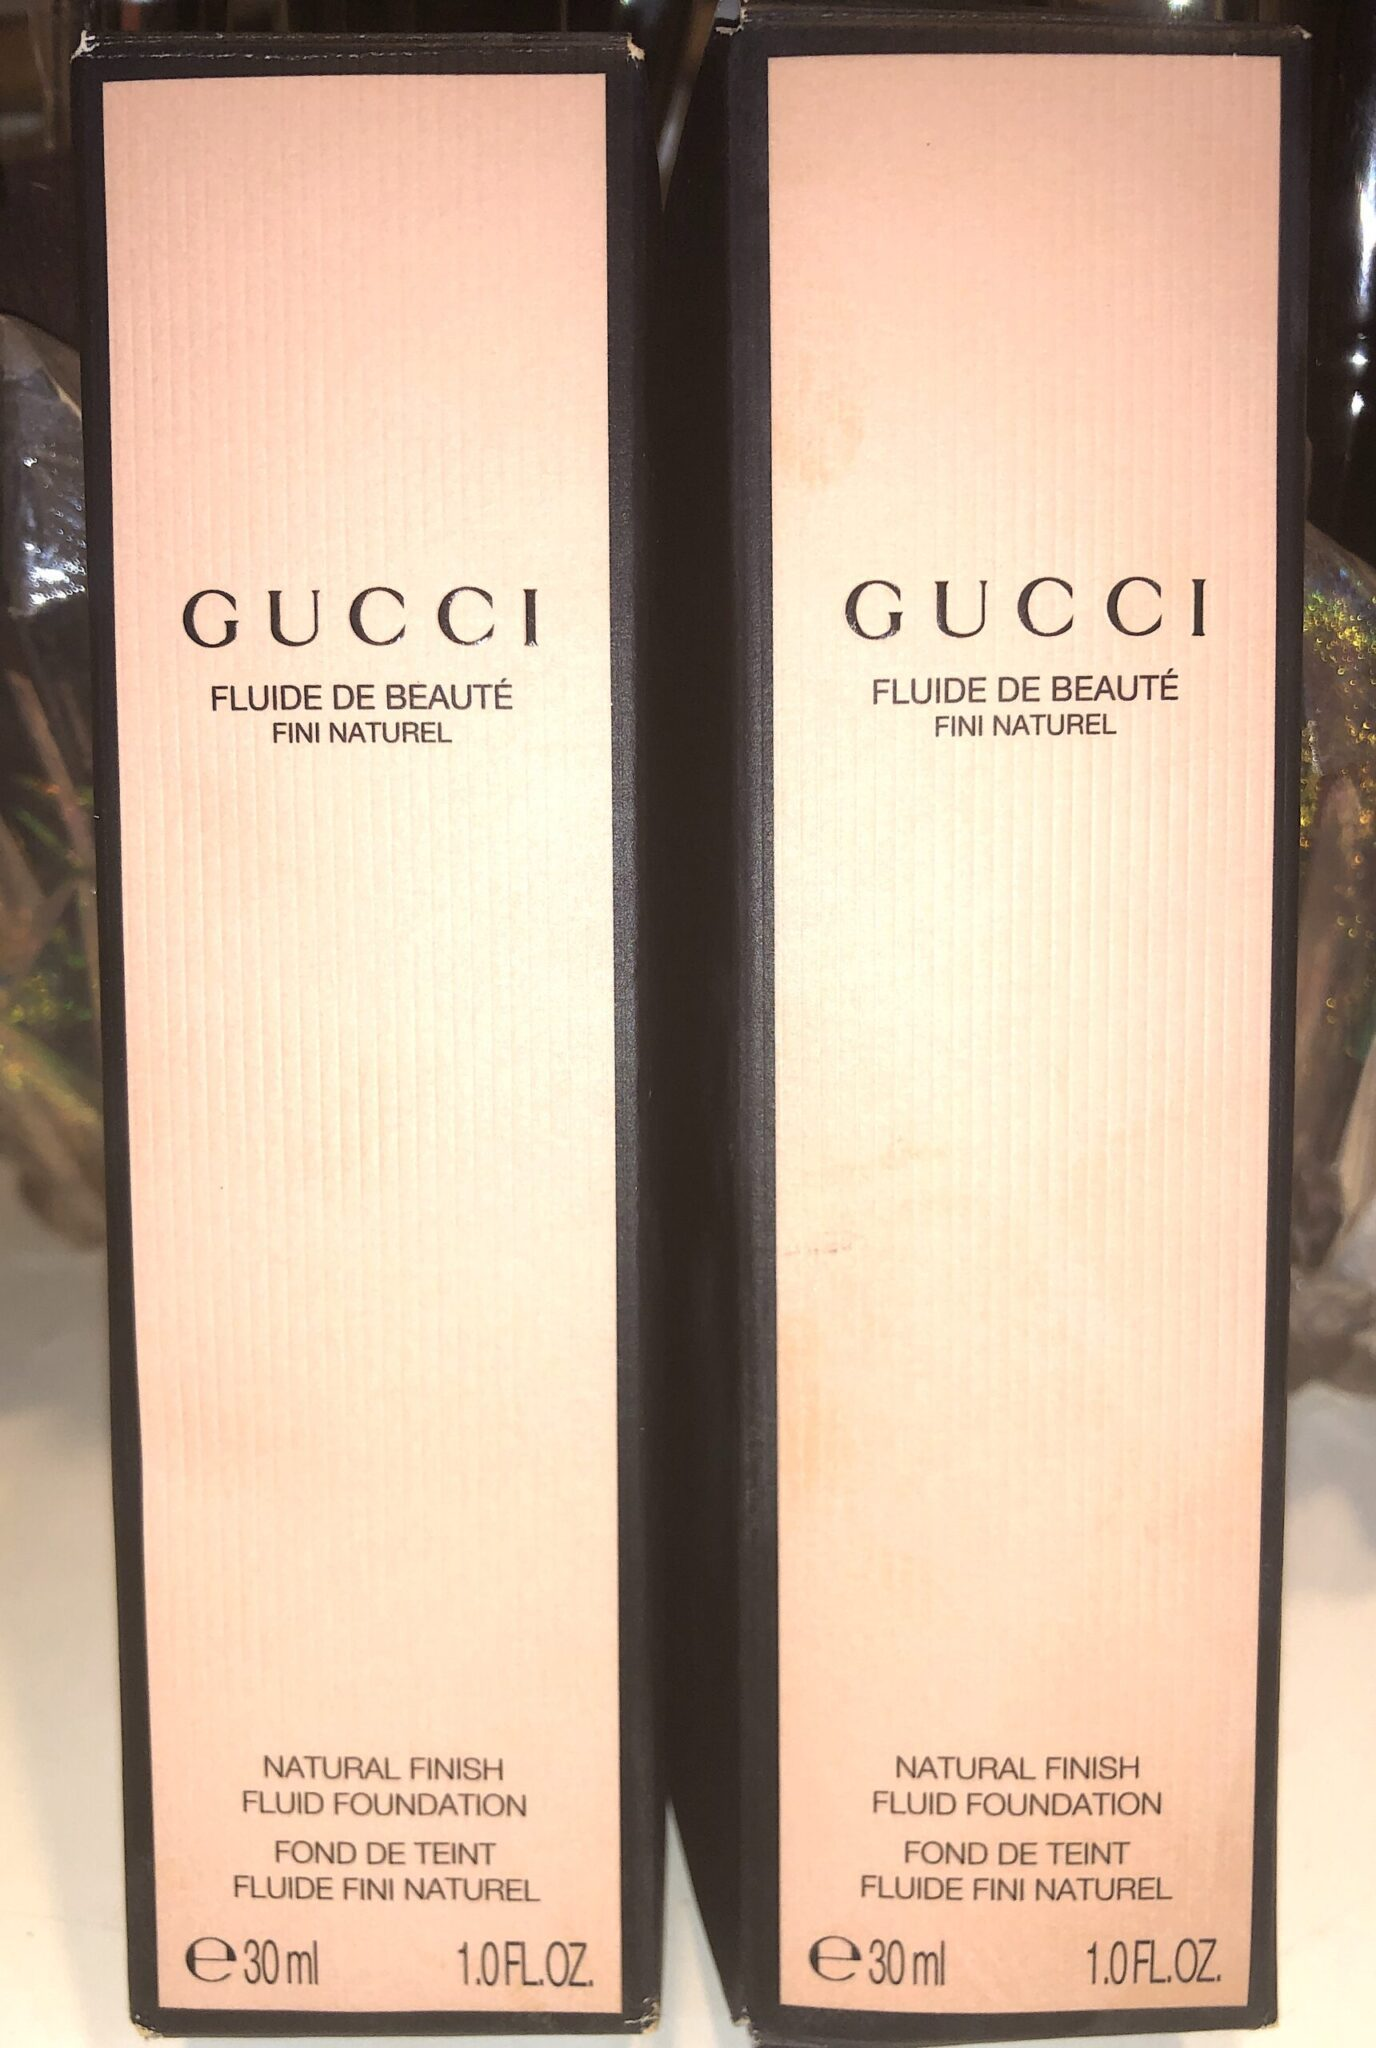 Gucci Natural Finish Fluid Foundation Outer Box